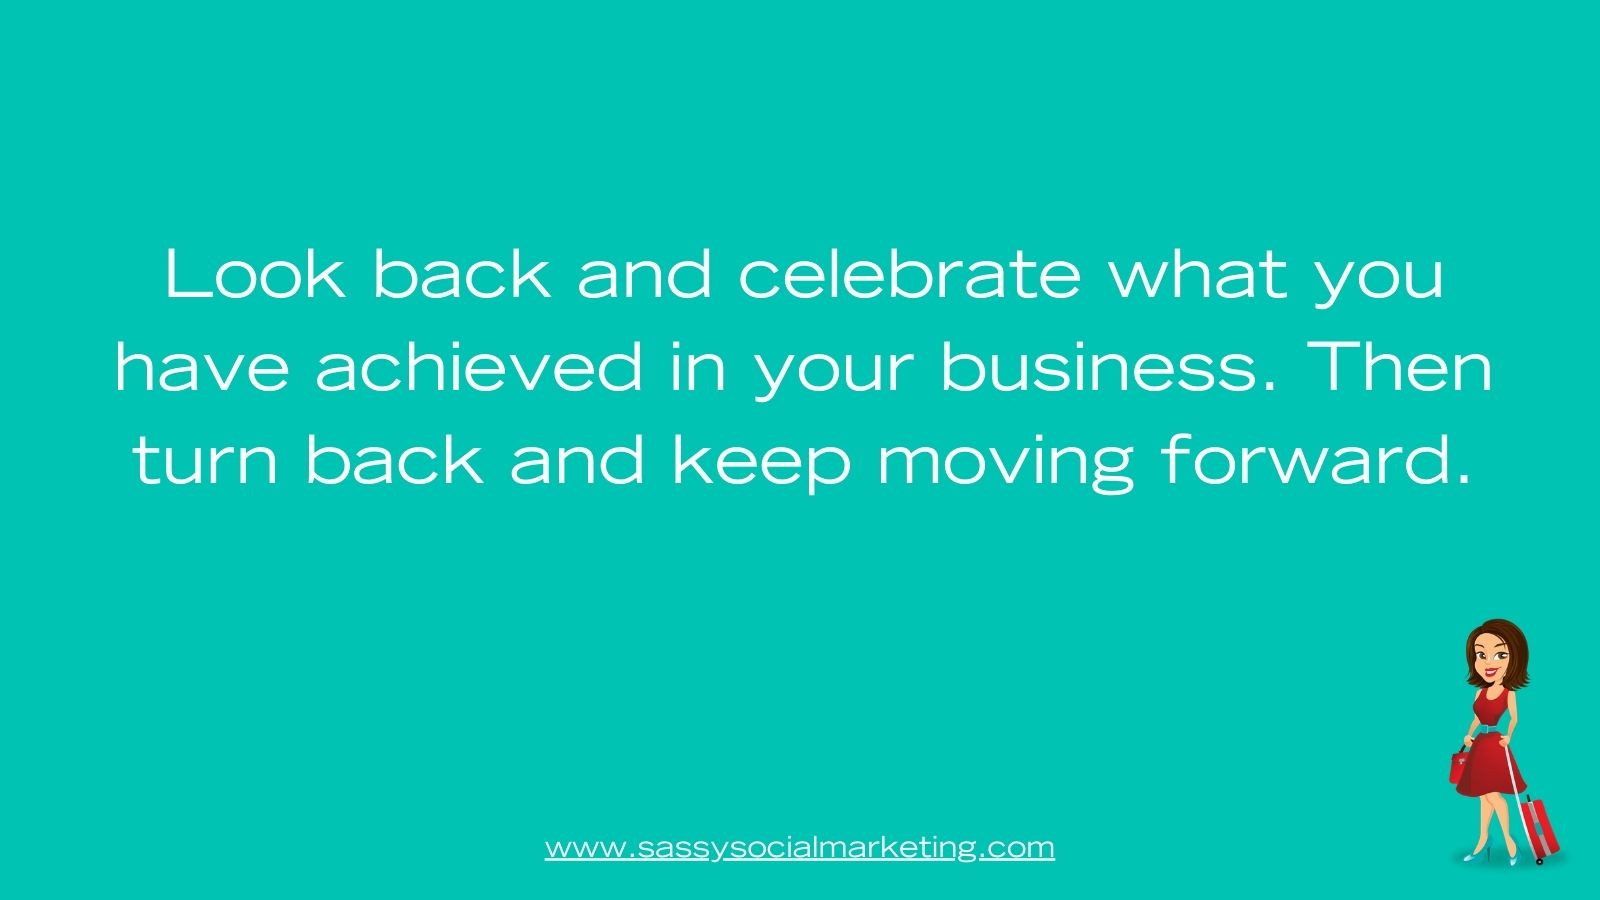 Look back and celebrate - Sassy Social Marketing